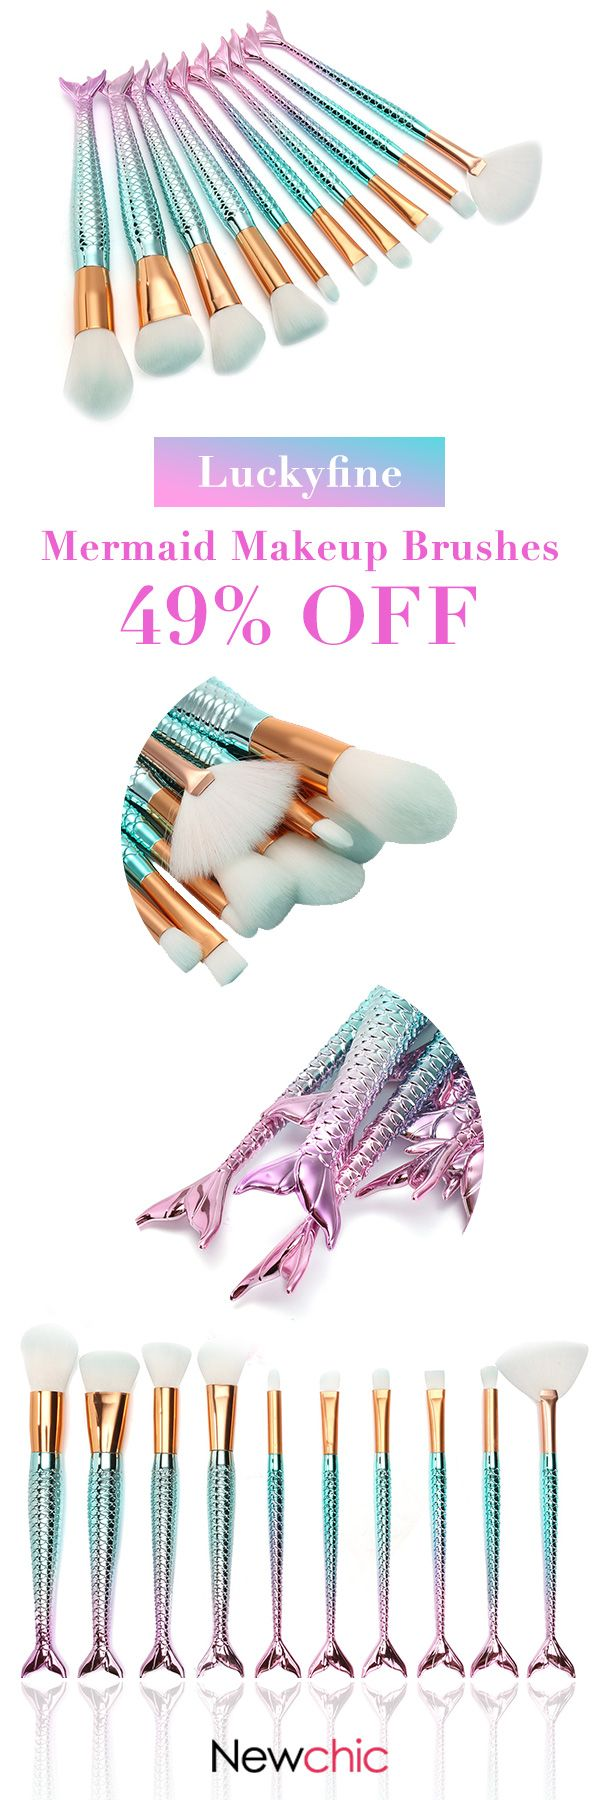 [Newchic Online Shopping] 49%OFF Luckyfine Mermaid Makeup Brushes Set